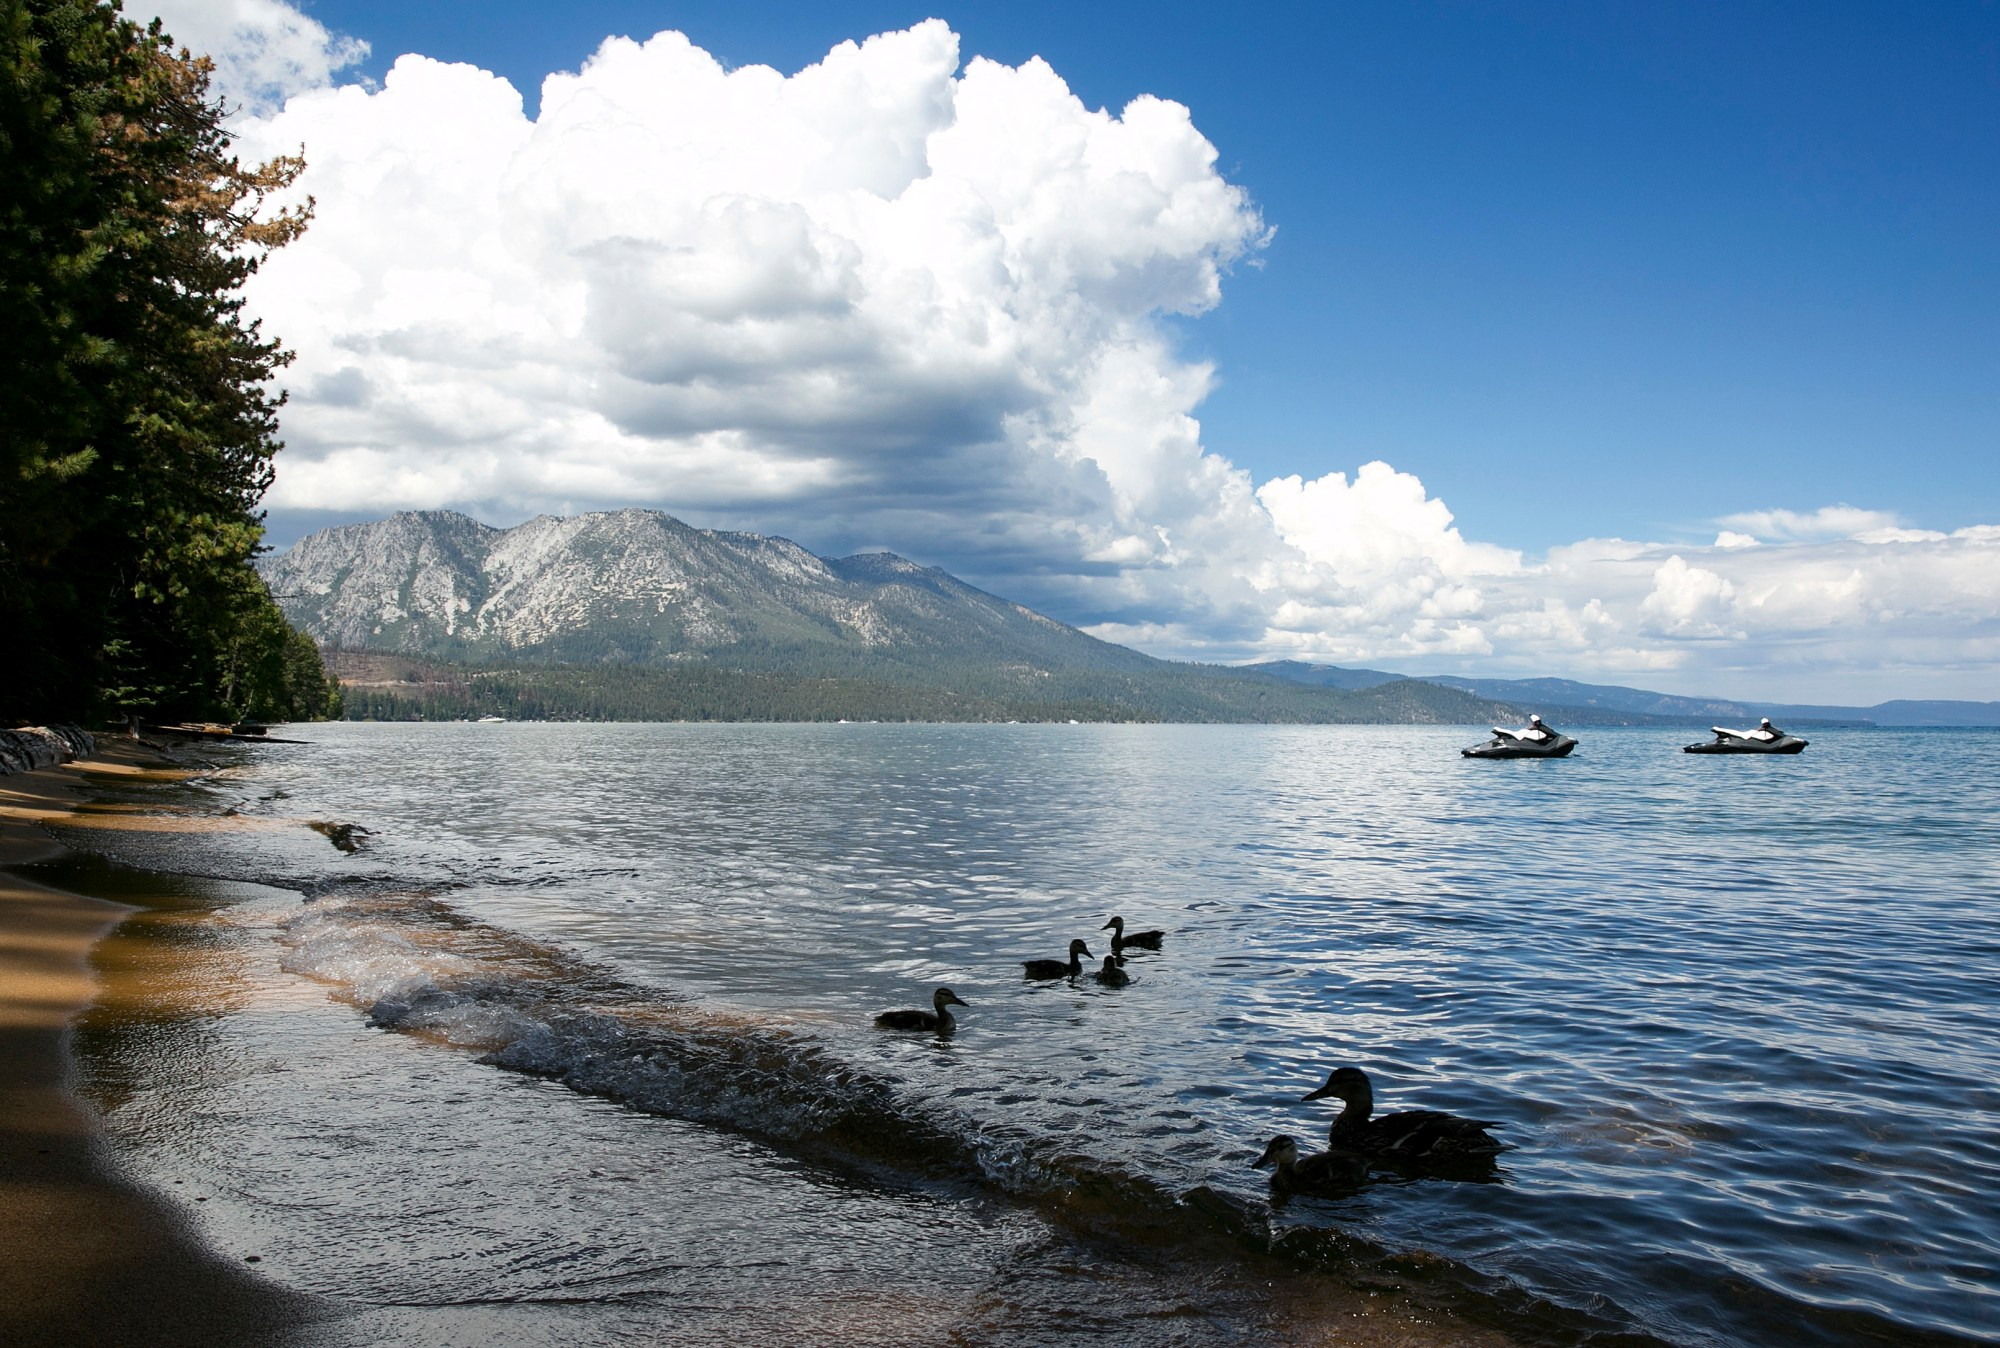 A family of ducks swims along the shore of South Lake Tahoe on Aug. 22, 2017. (Rich Pedroncelli/Associated Press)